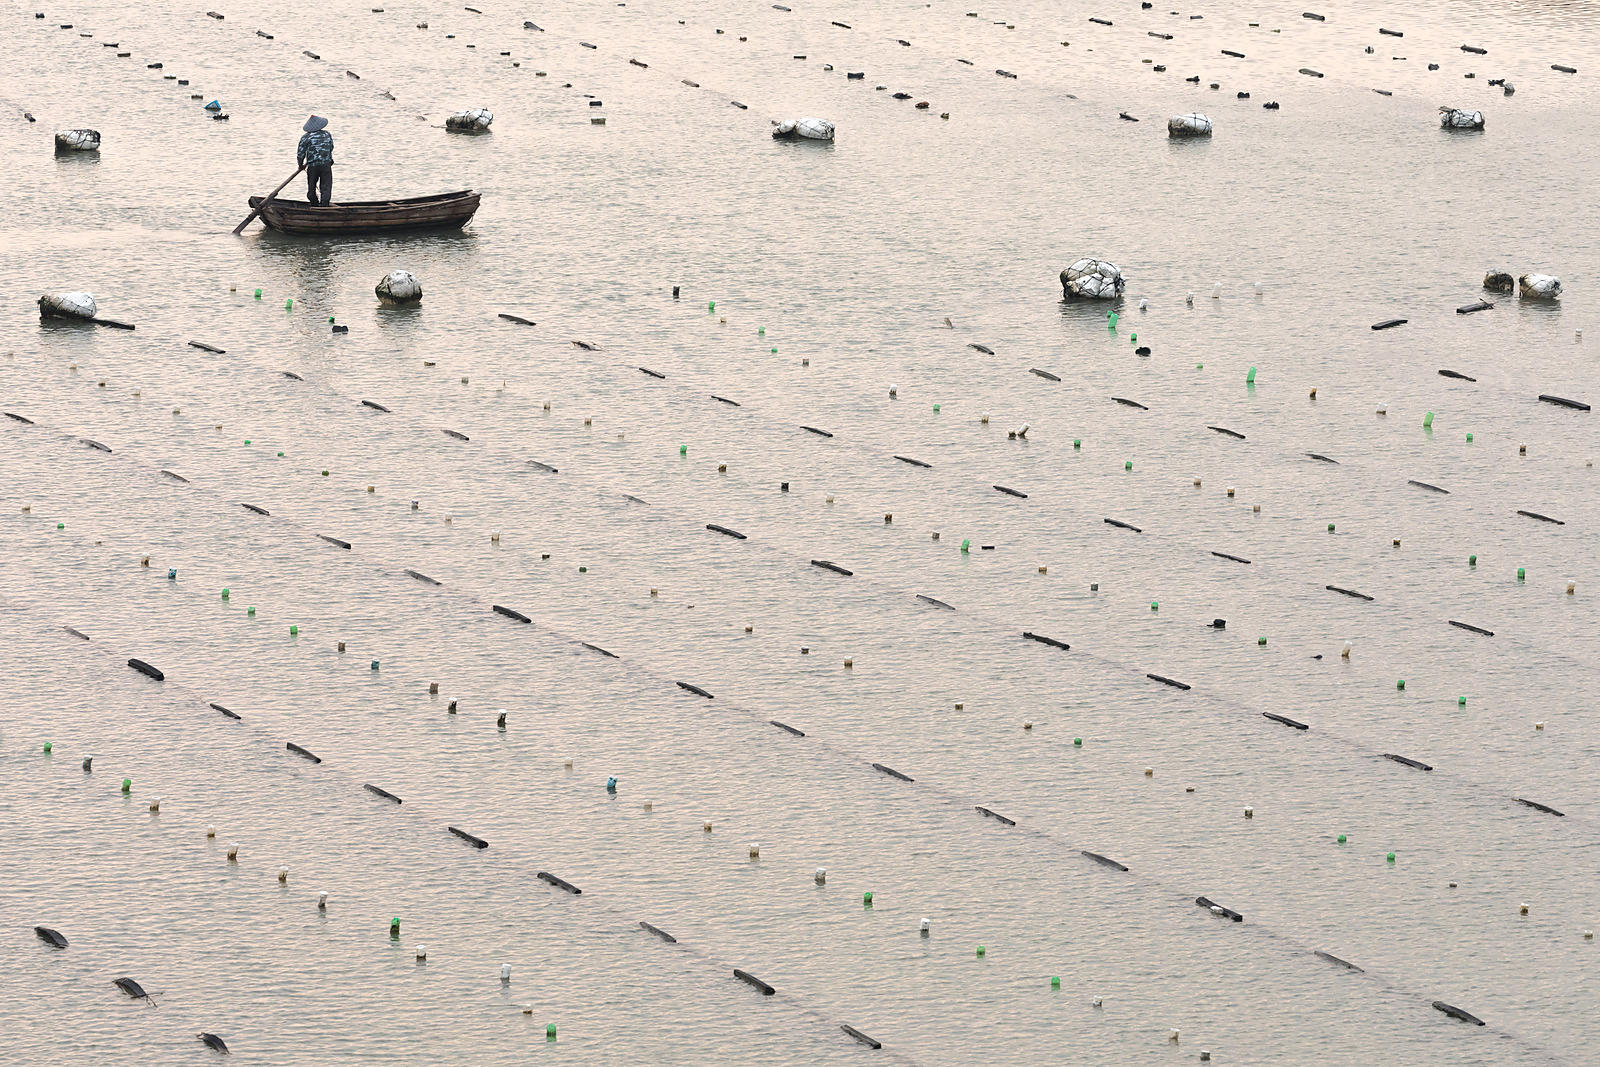 Aquaculture Patterns